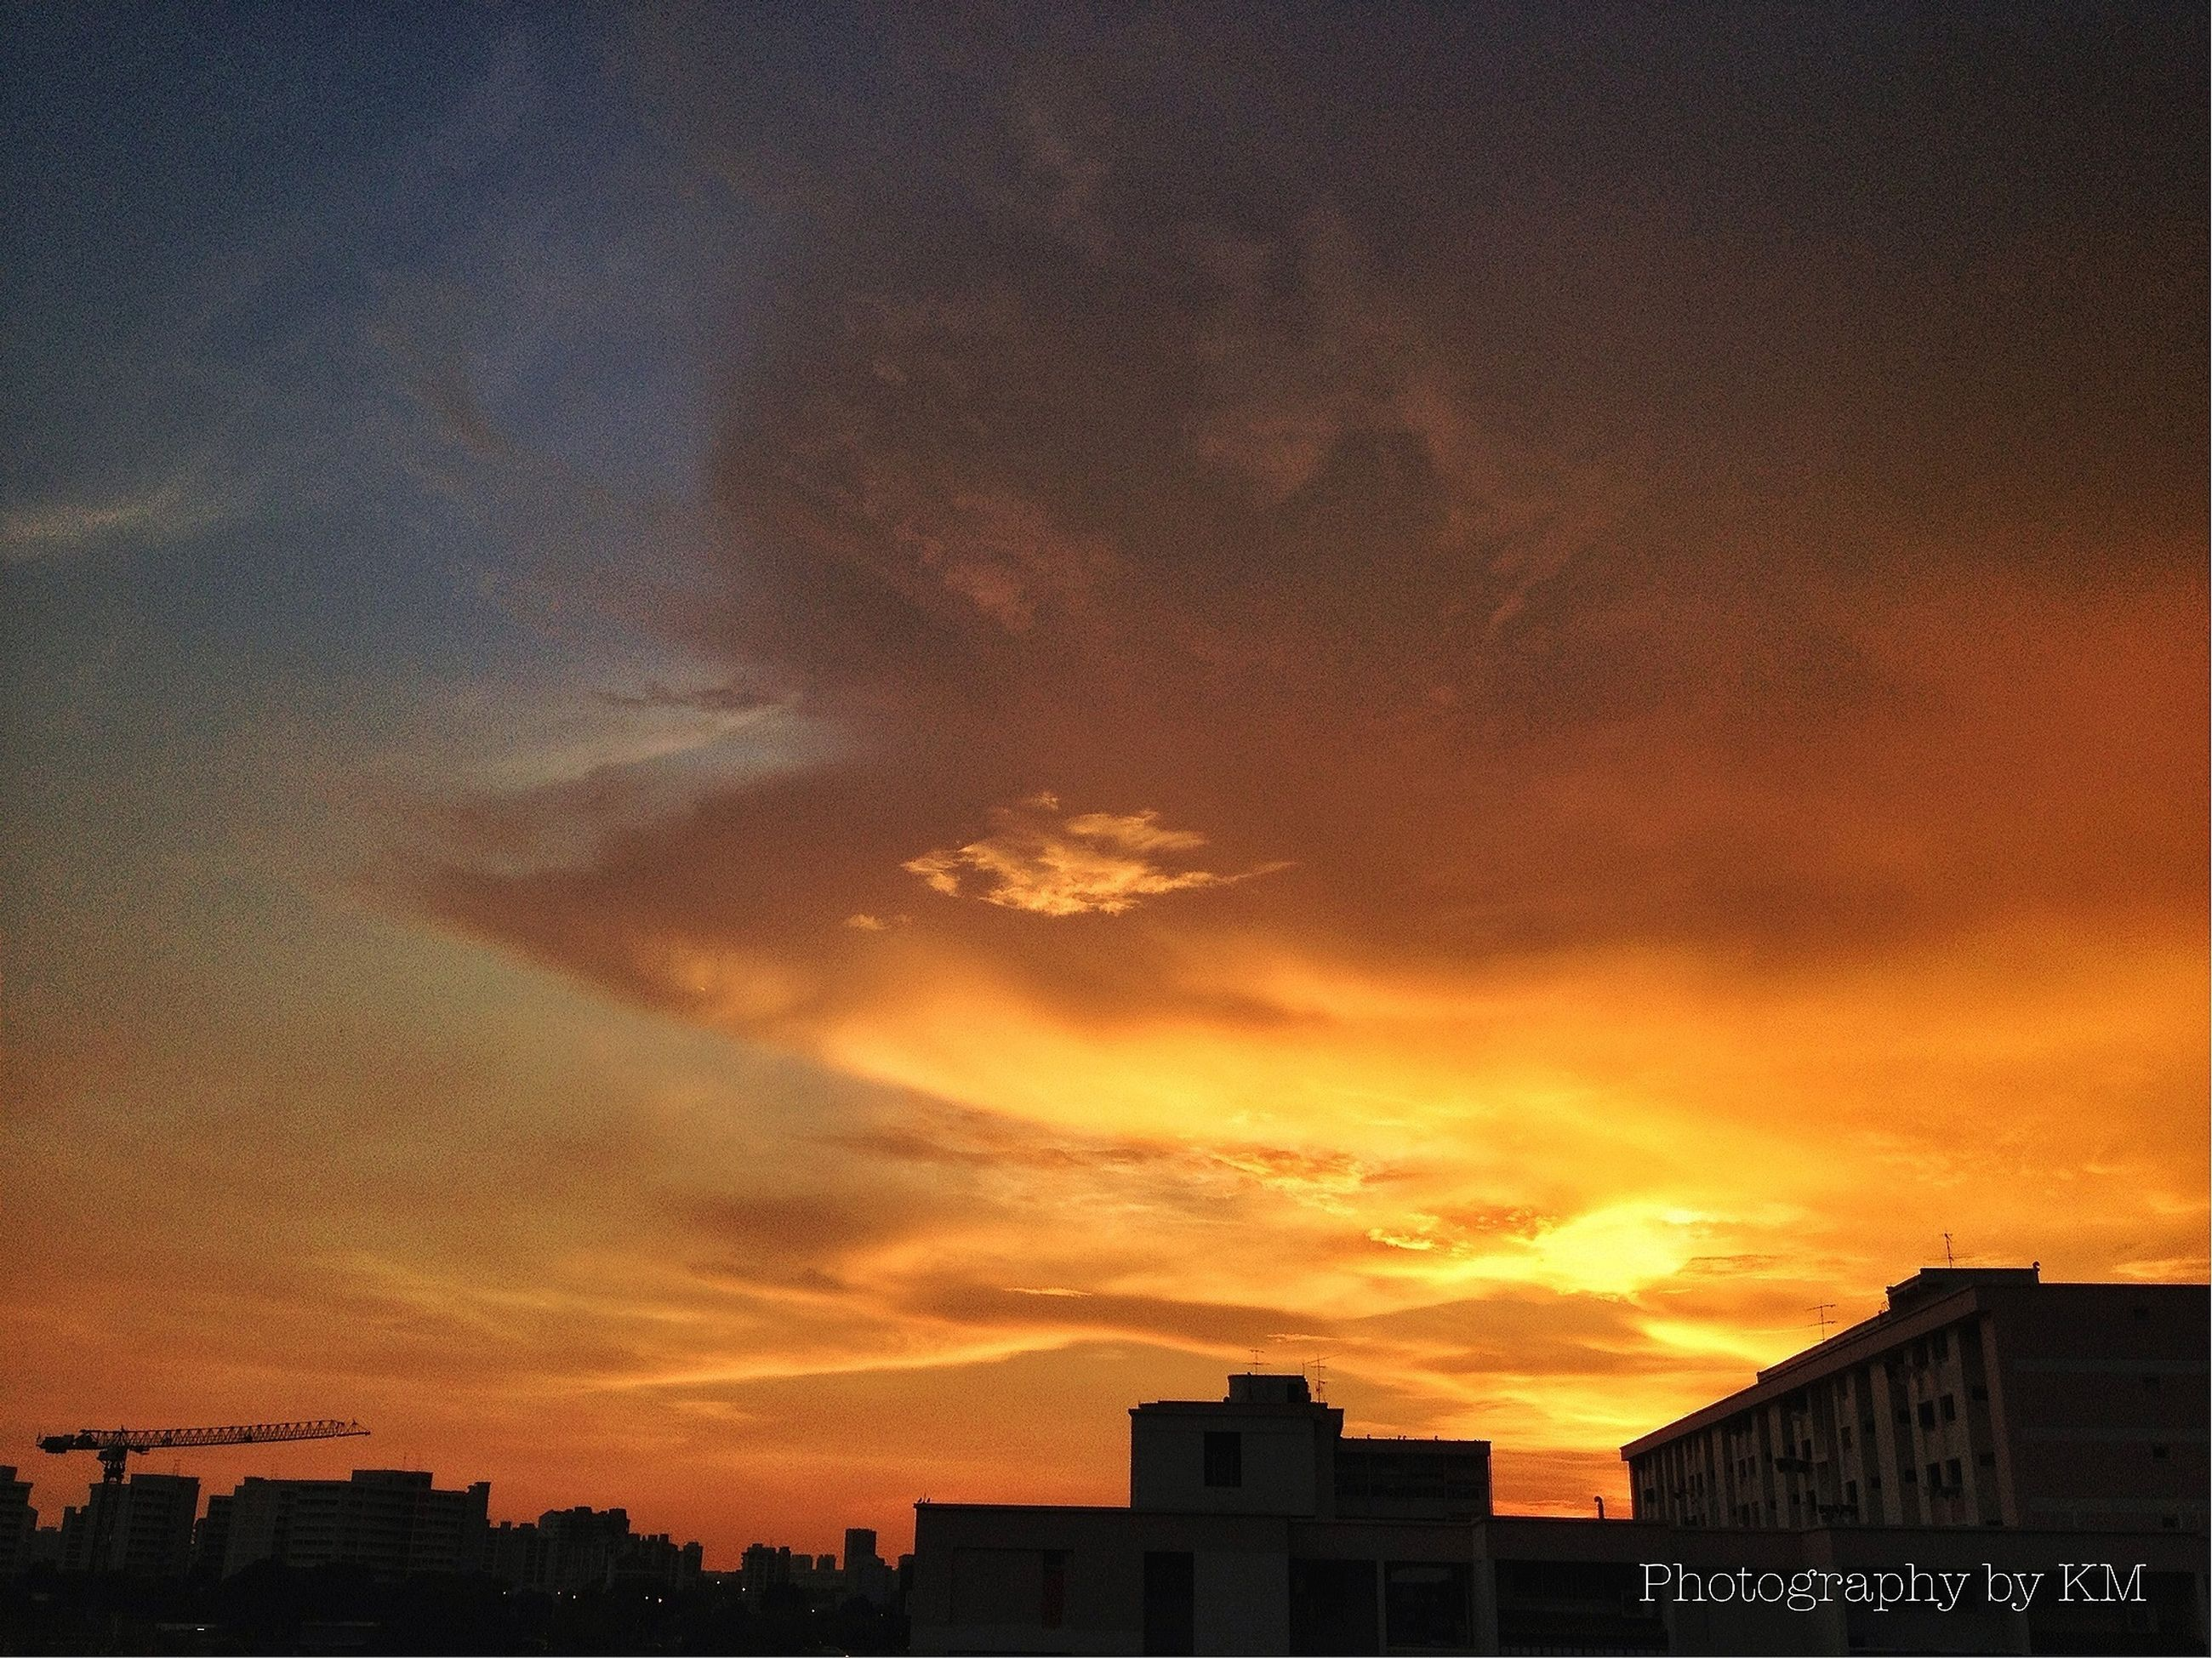 building exterior, sunset, architecture, built structure, orange color, sky, cloud - sky, silhouette, low angle view, city, residential structure, residential building, house, building, cloud, dramatic sky, cloudy, outdoors, high section, nature